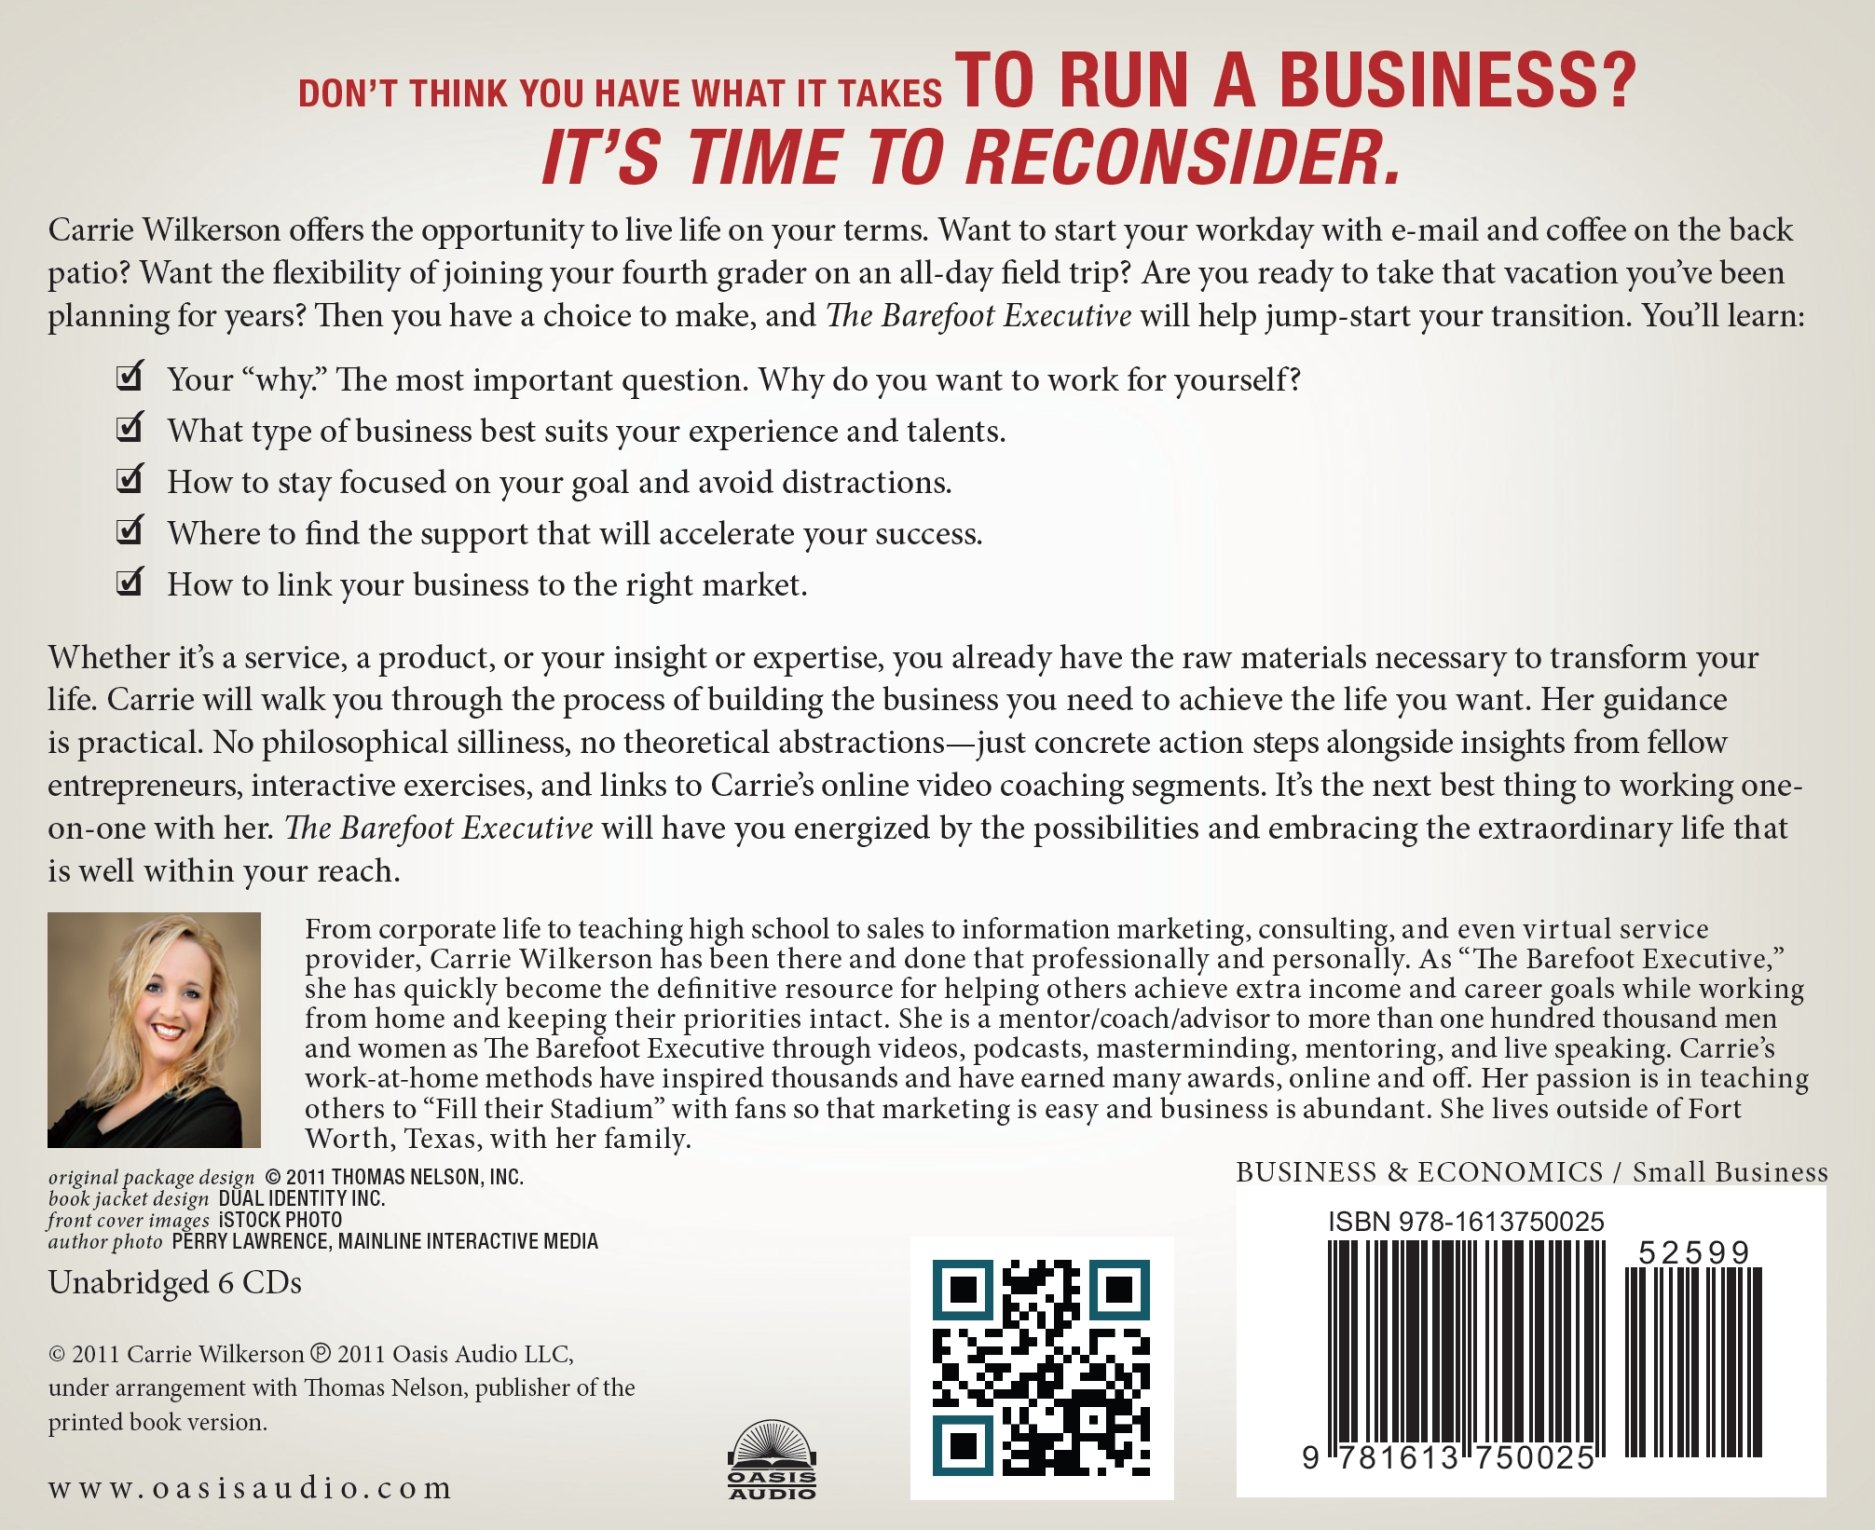 The barefoot executive the ultimate guide to being your own boss the barefoot executive the ultimate guide to being your own boss and achieving financial freedom carrie wilkerson 9781613750025 amazon books malvernweather Gallery